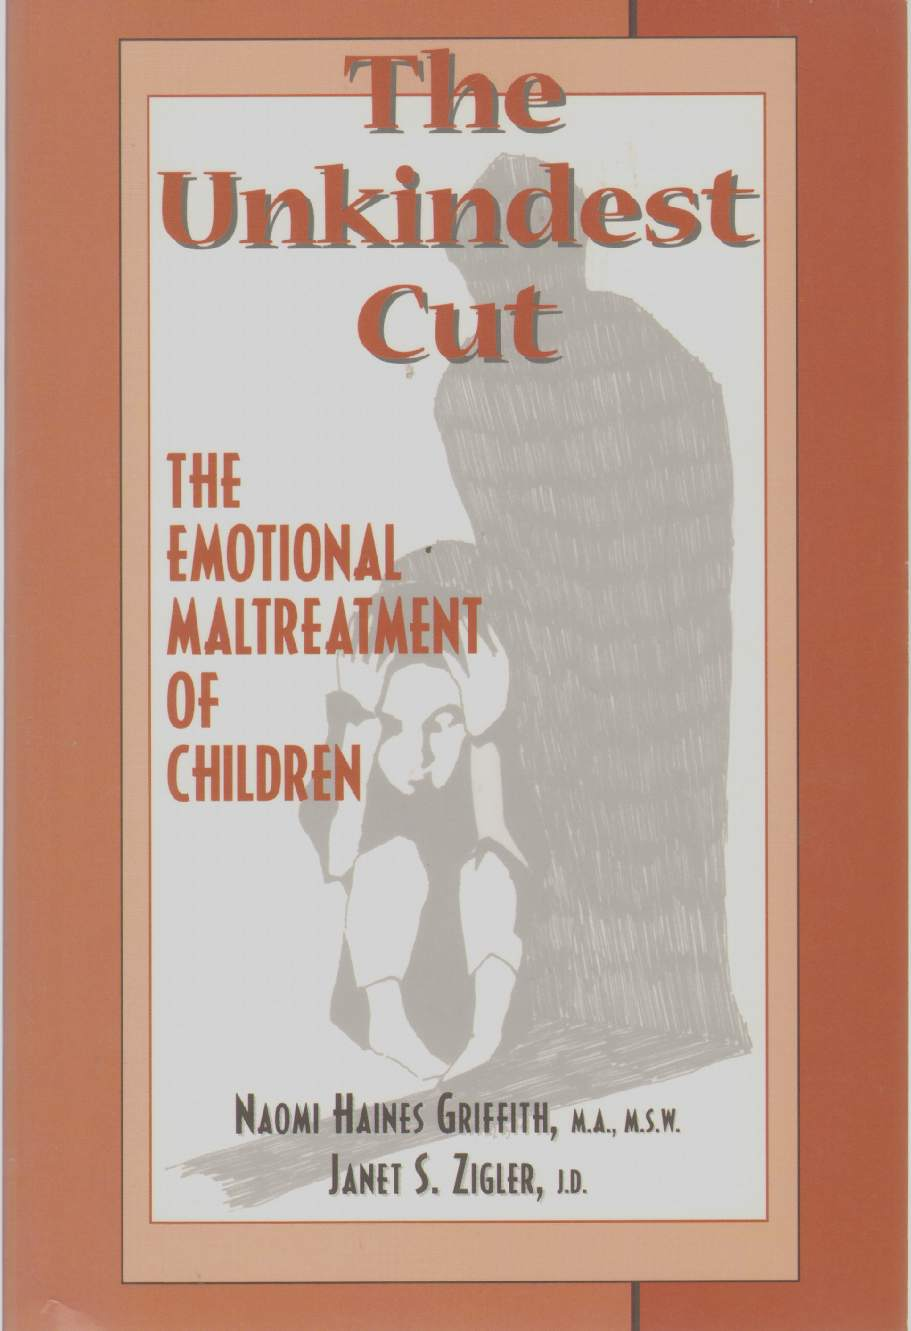 Image for THE UNKINDEST CUT The Emotional Maltreatment of Children